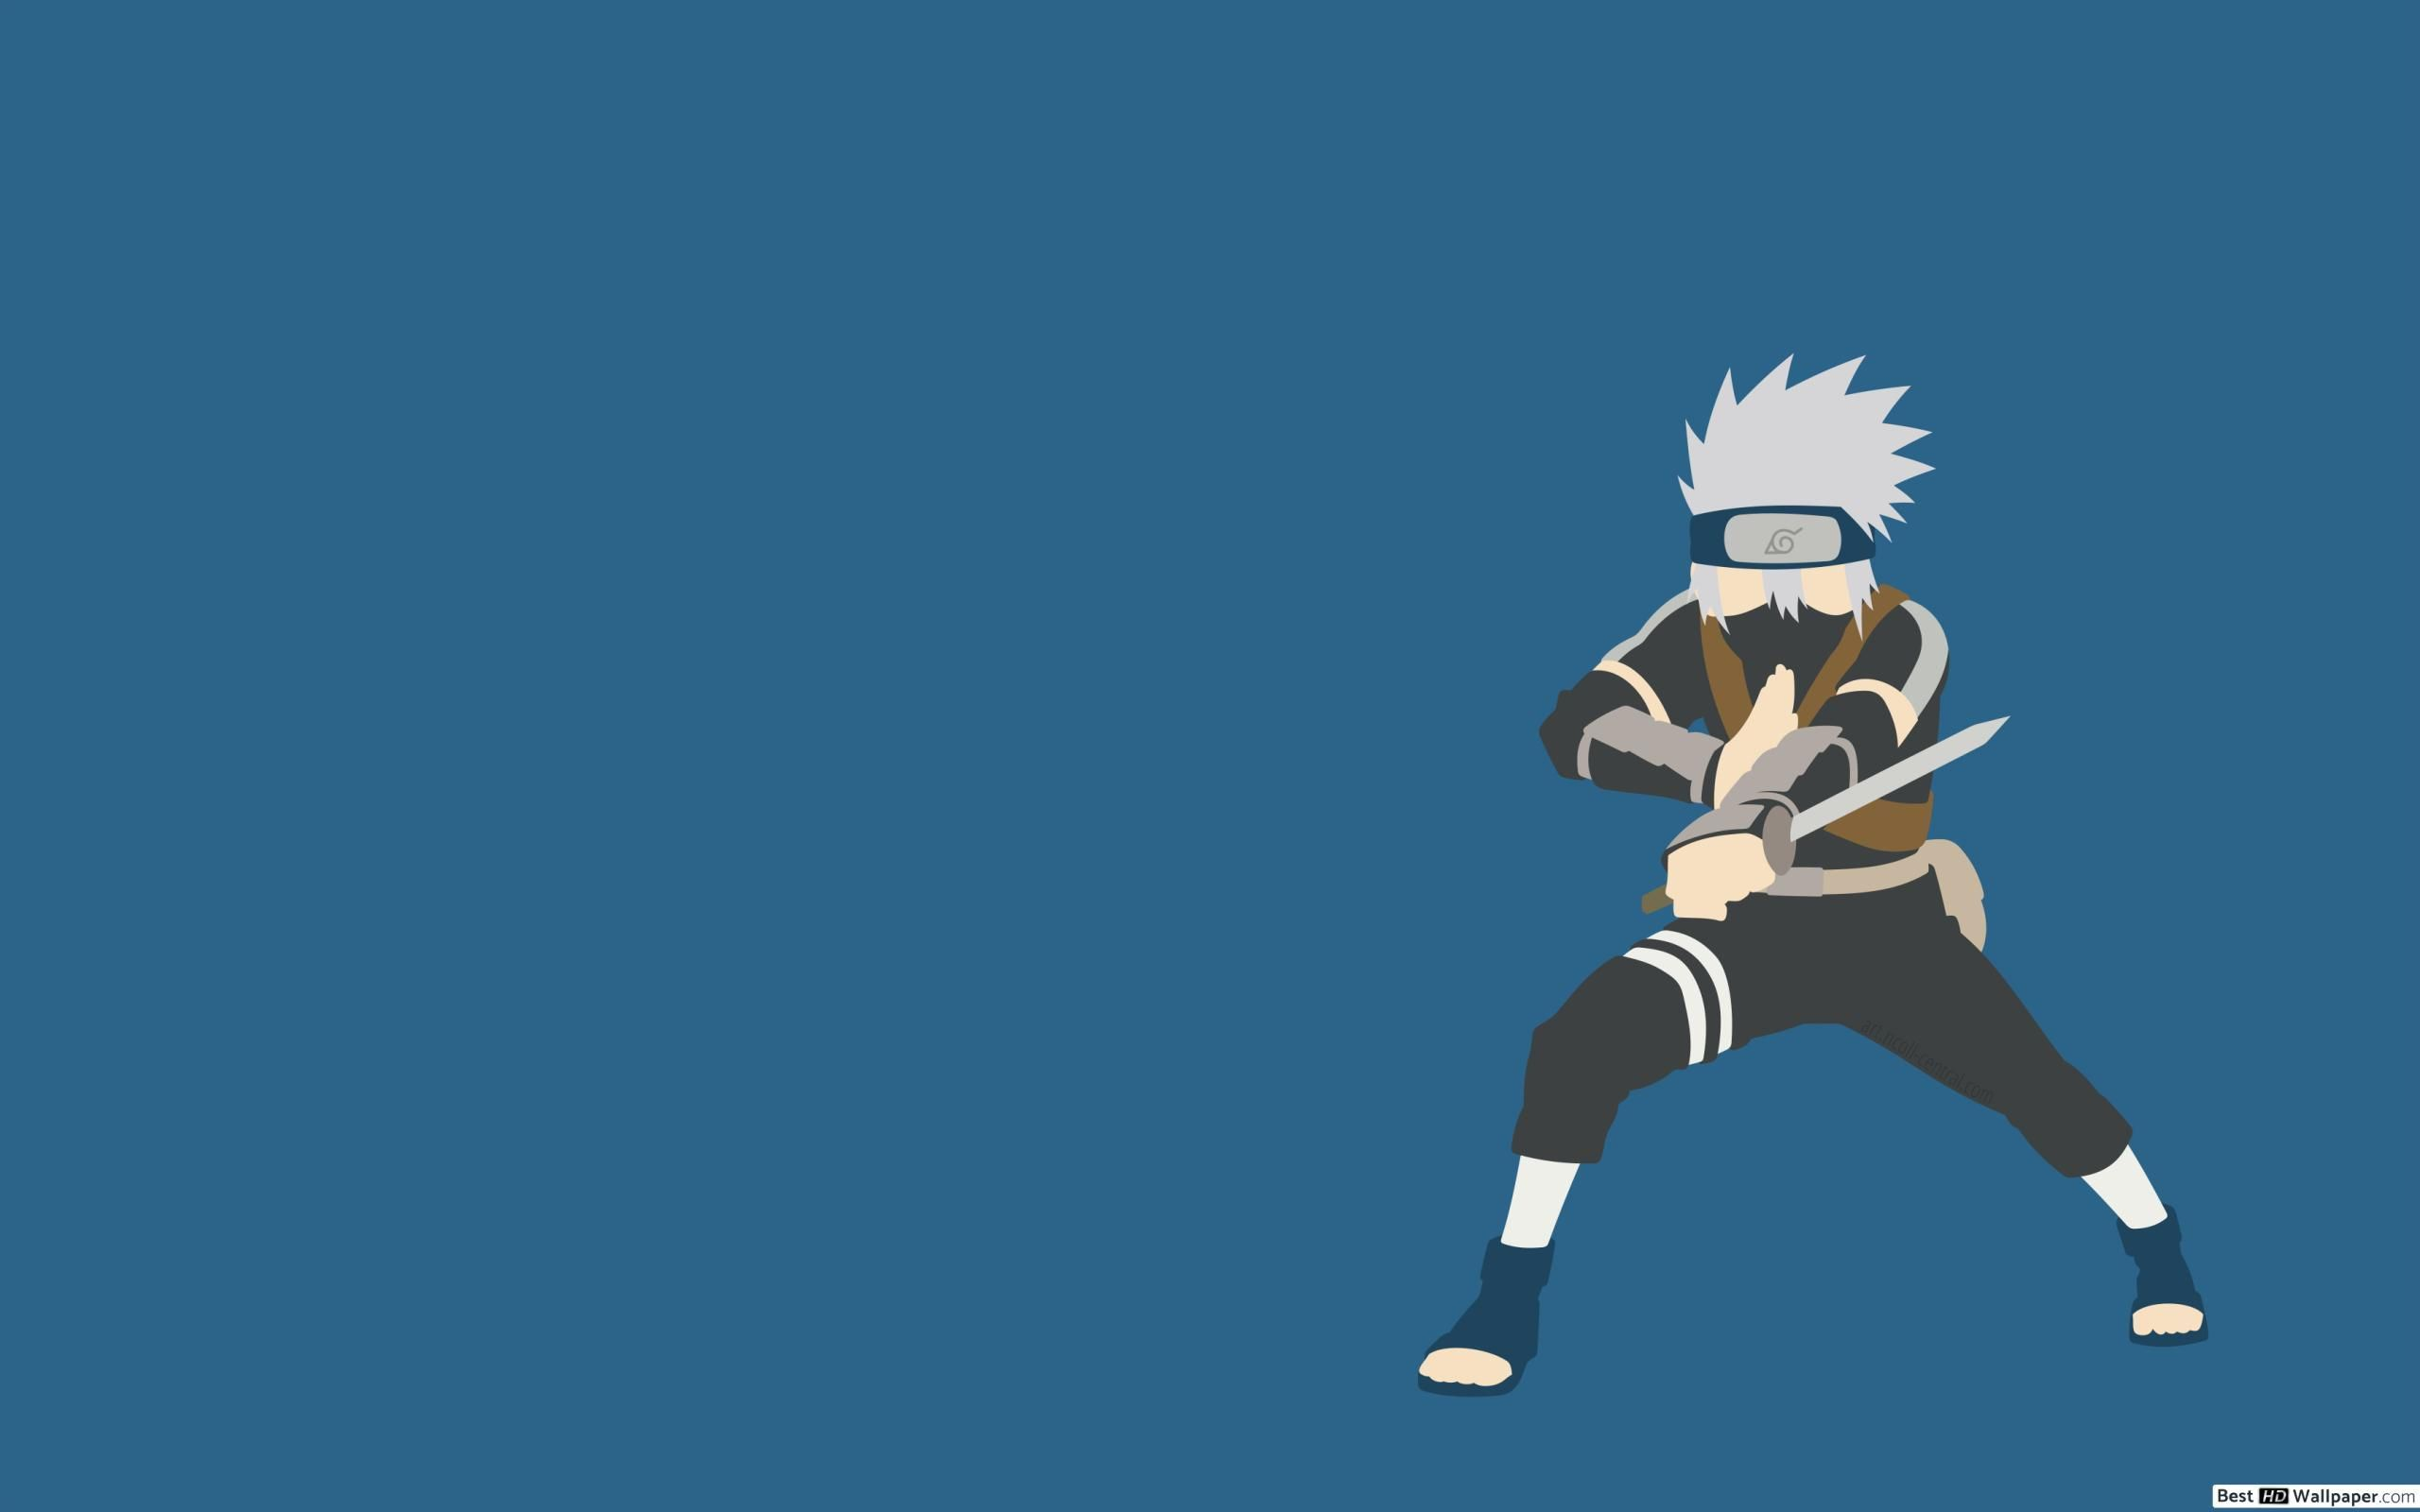 Naruto Wallpaper Ipad Pro Kakashi Hatake Of Naruto Hd Wallpaper Download Narut Goruntuler Ile